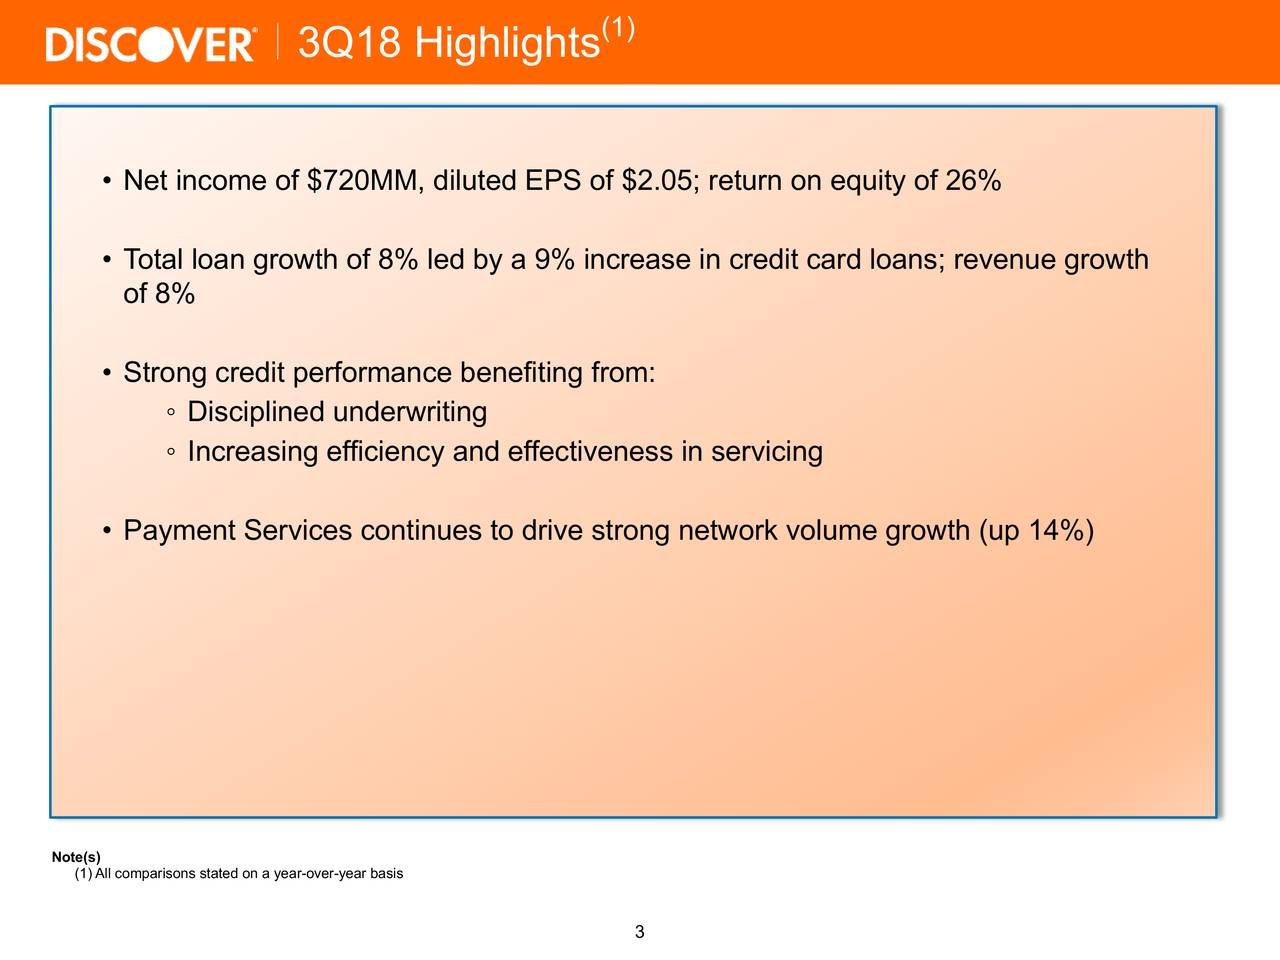 3Q18 Highlights • Net income of $720MM, diluted EPS of $2.05; return on equity of 26% • Total loan growth of 8% led by a 9% increase in credit card loans; revenue growth of 8% • Strong credit performance benefiting from: ◦ Disciplined underwriting ◦ Increasing efficiency and effectiveness in servicing • Payment Services continues to drive strong network volume growth (up 14%) Note(s) All comparisons stated on a year-over-year basis 3